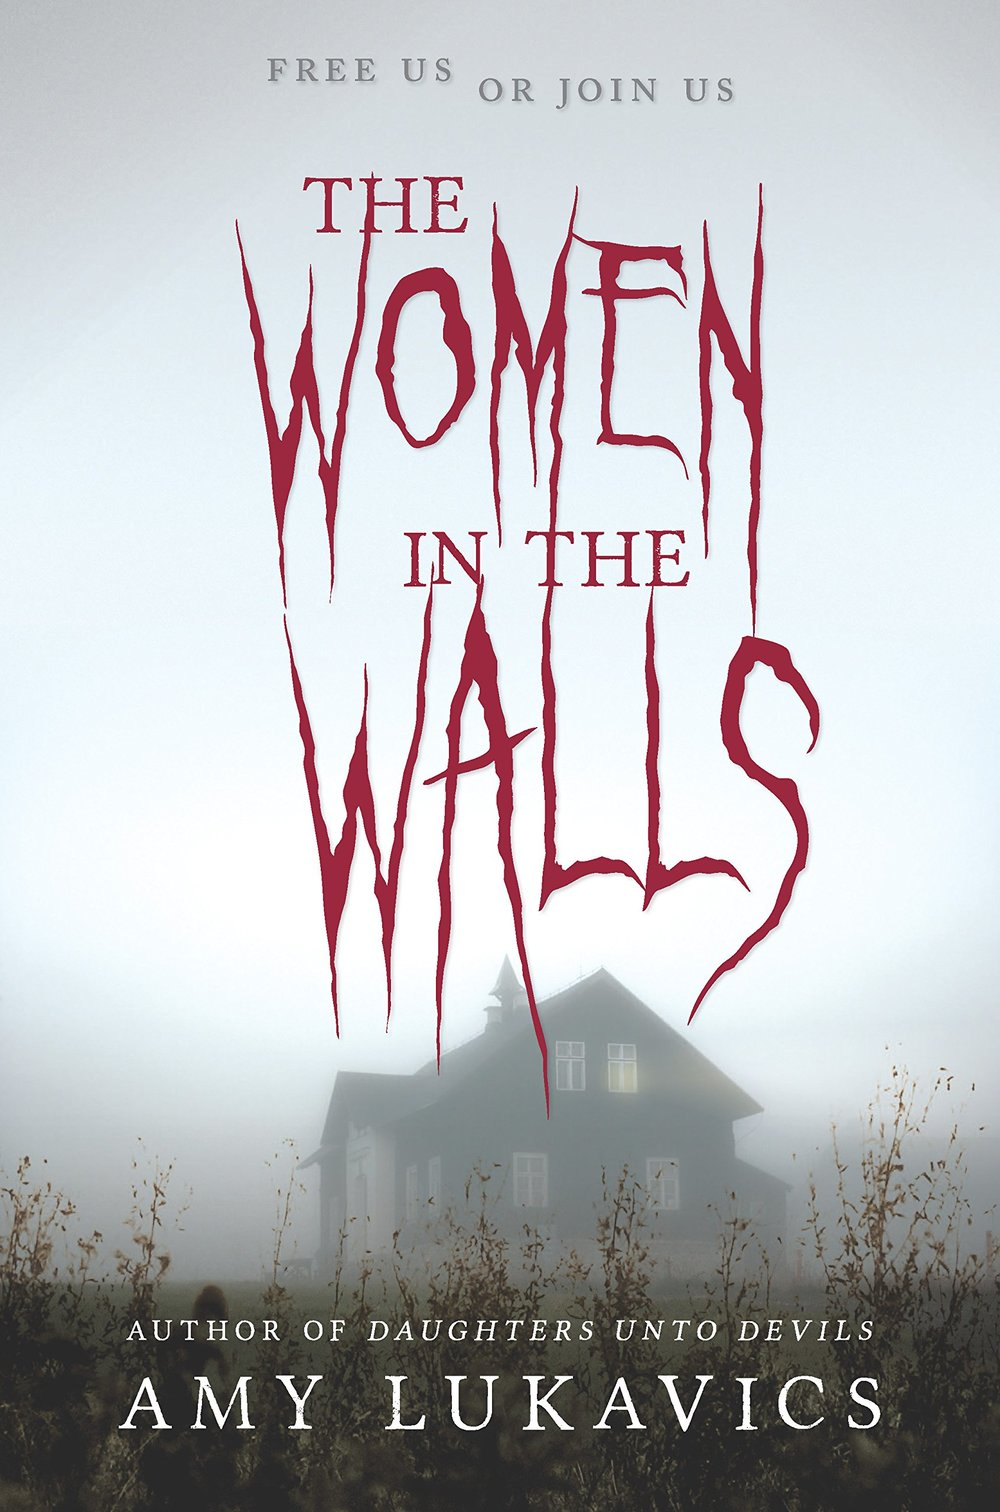 The Women in the Walls, by Amy Lukavics